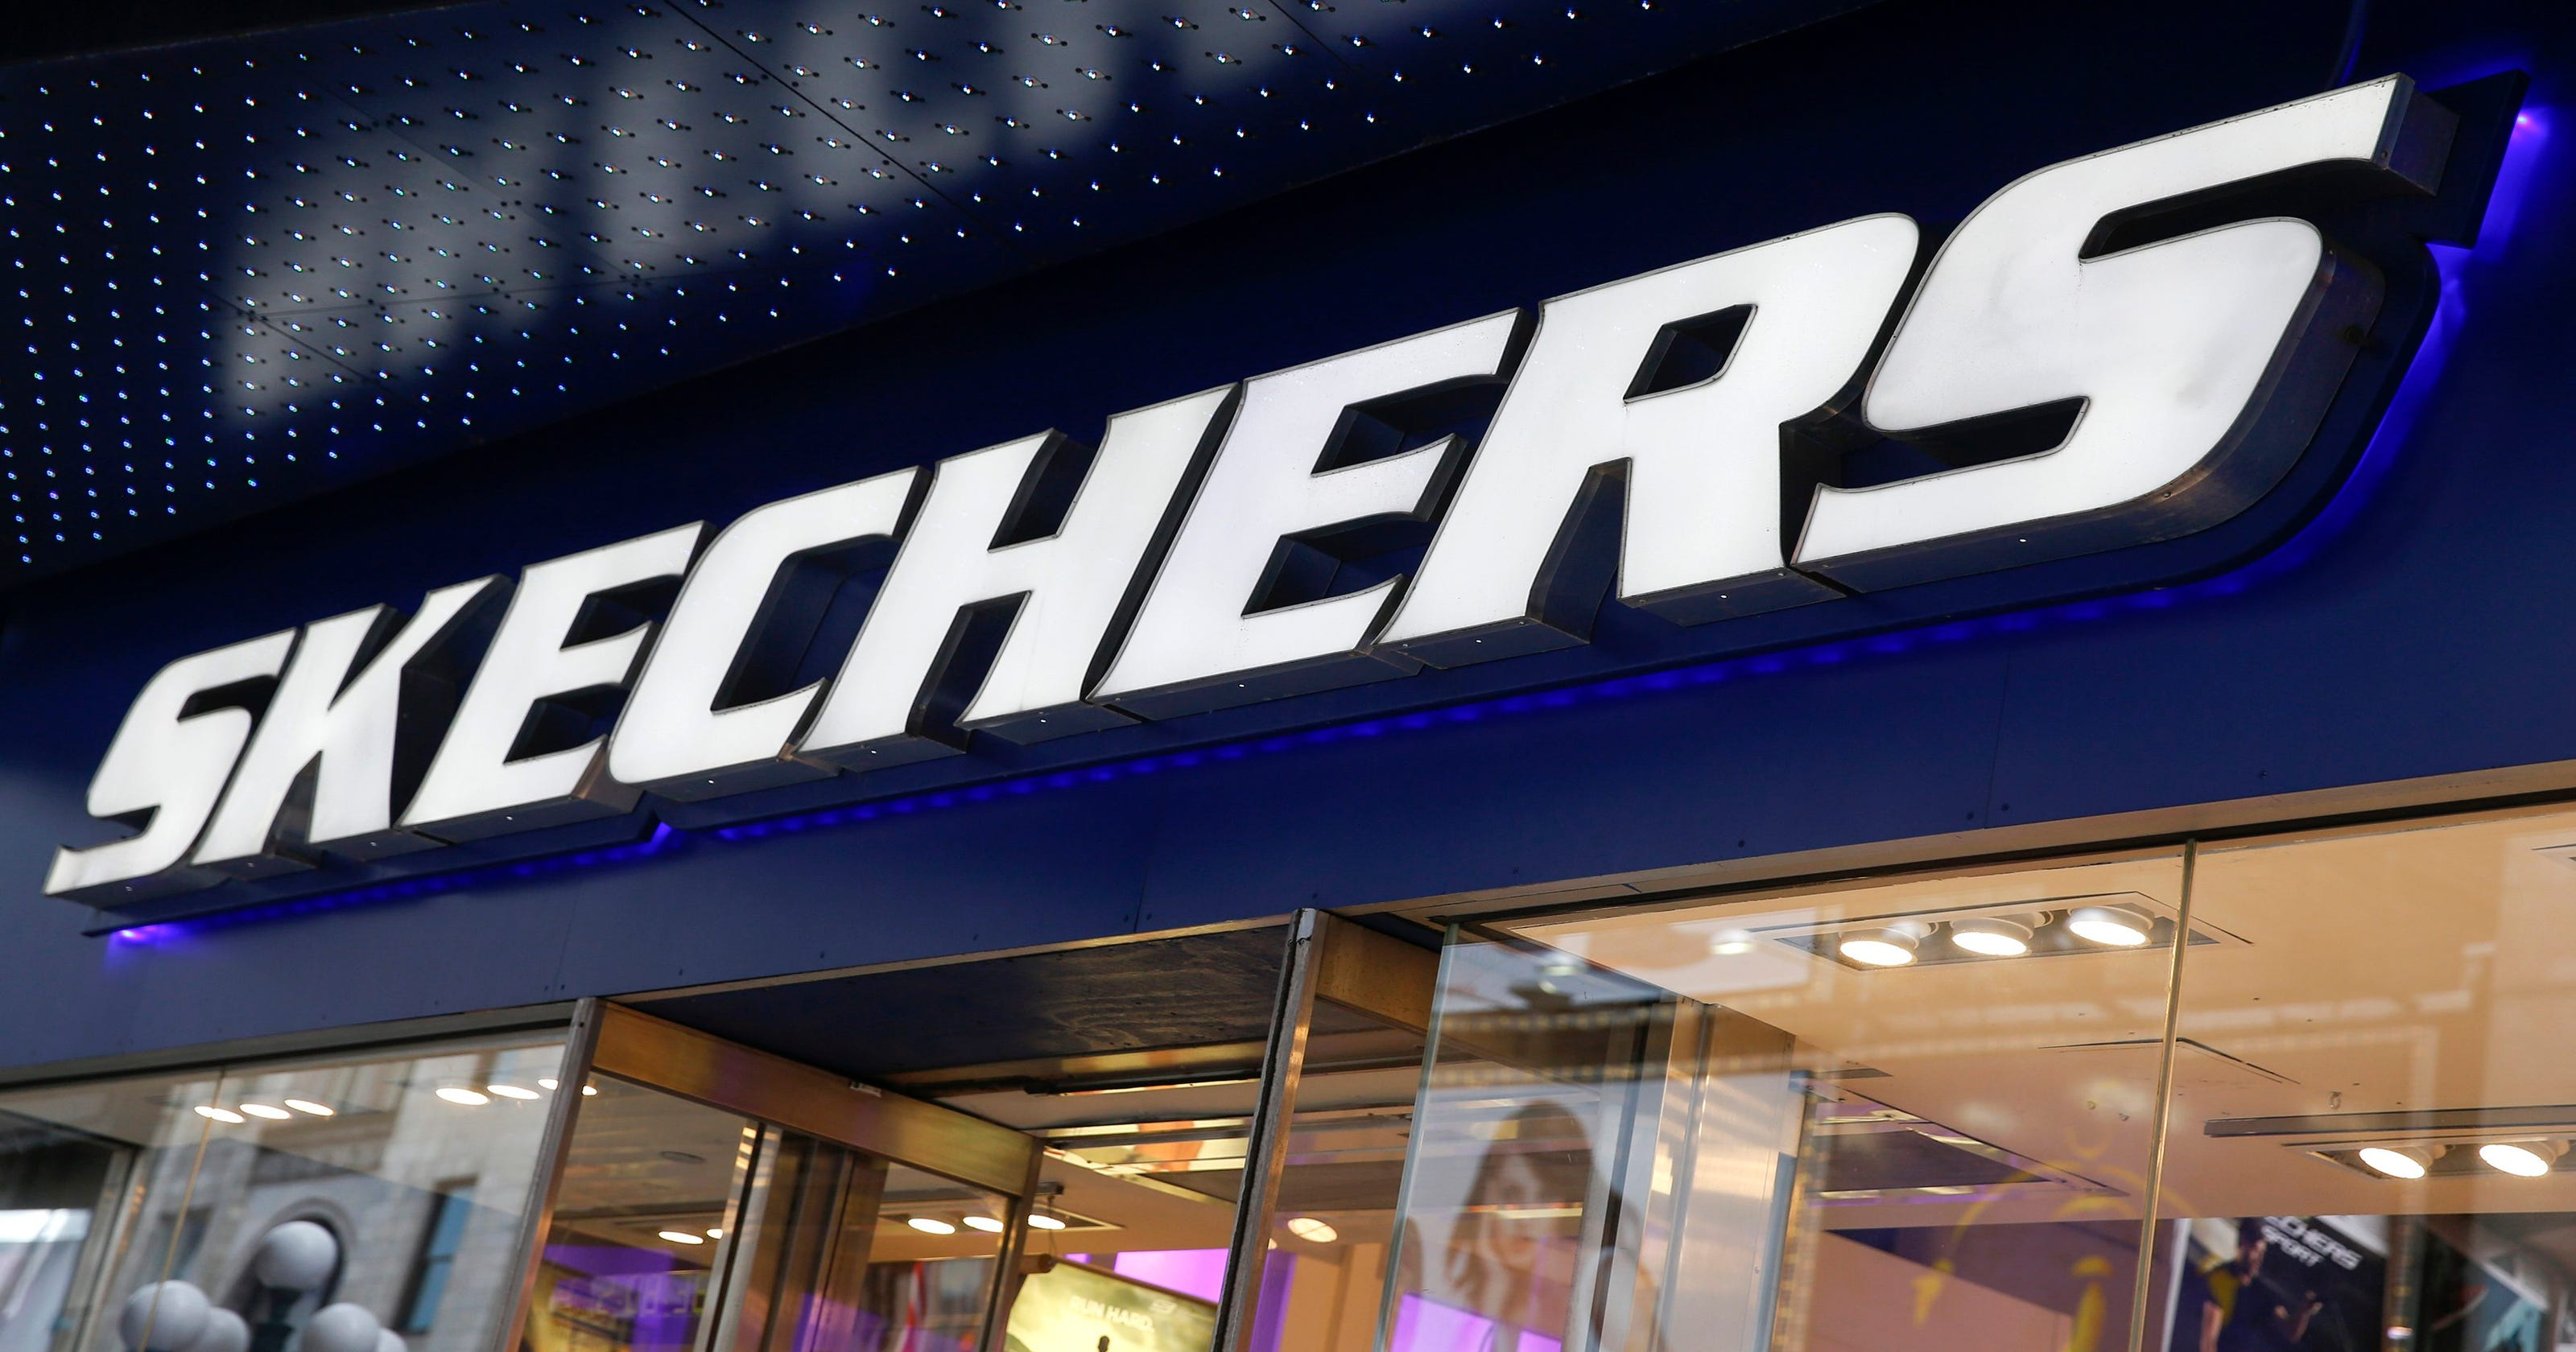 We'd love to see top basketball prospects sign with Skechers